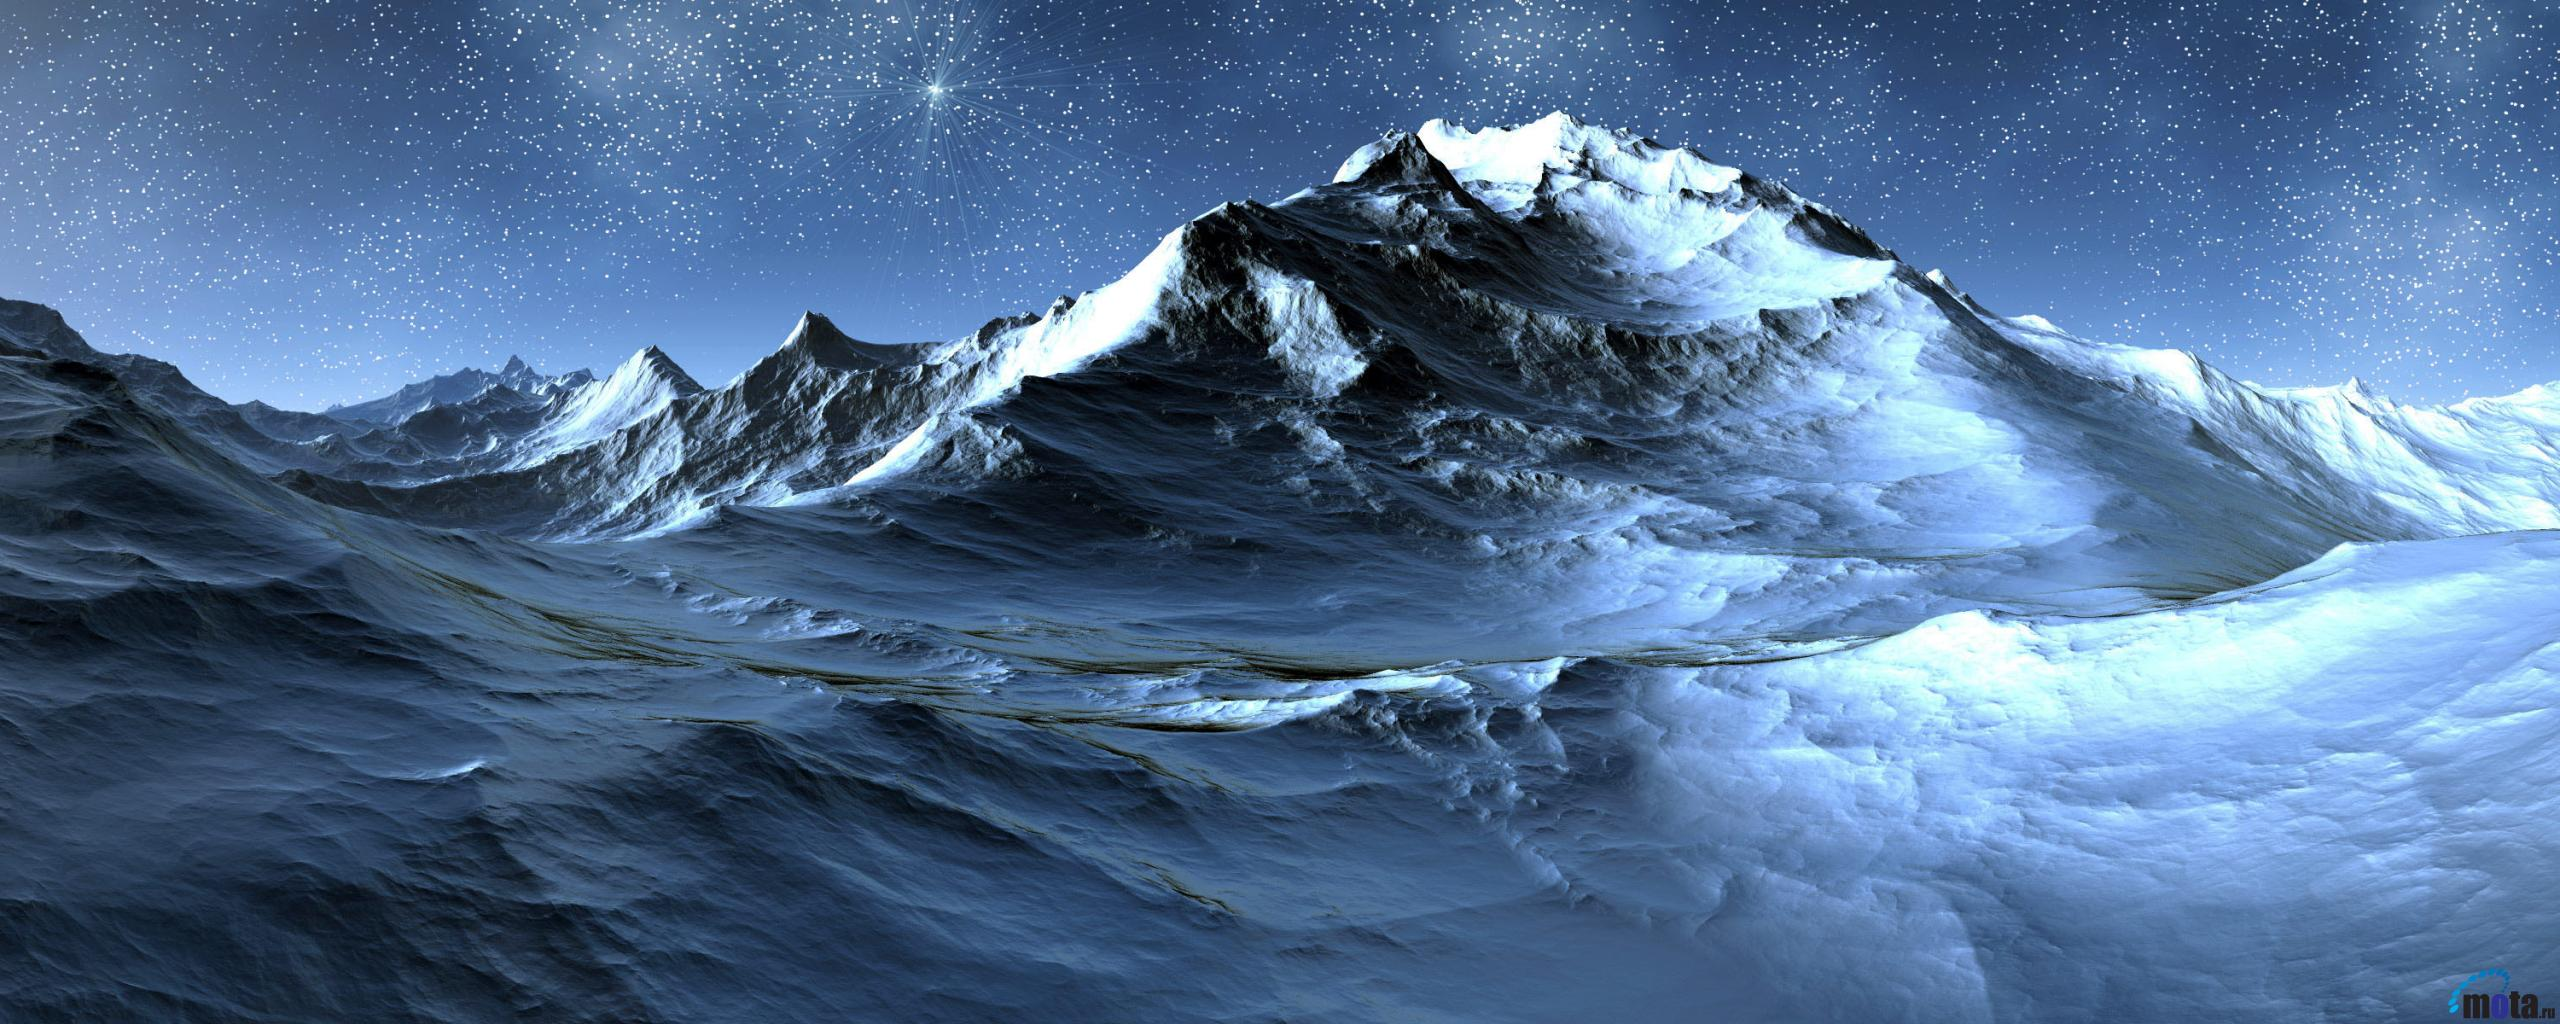 Download Wallpaper Antarctica at Night 2560 x 1024 Dual Monitor 2560x1024